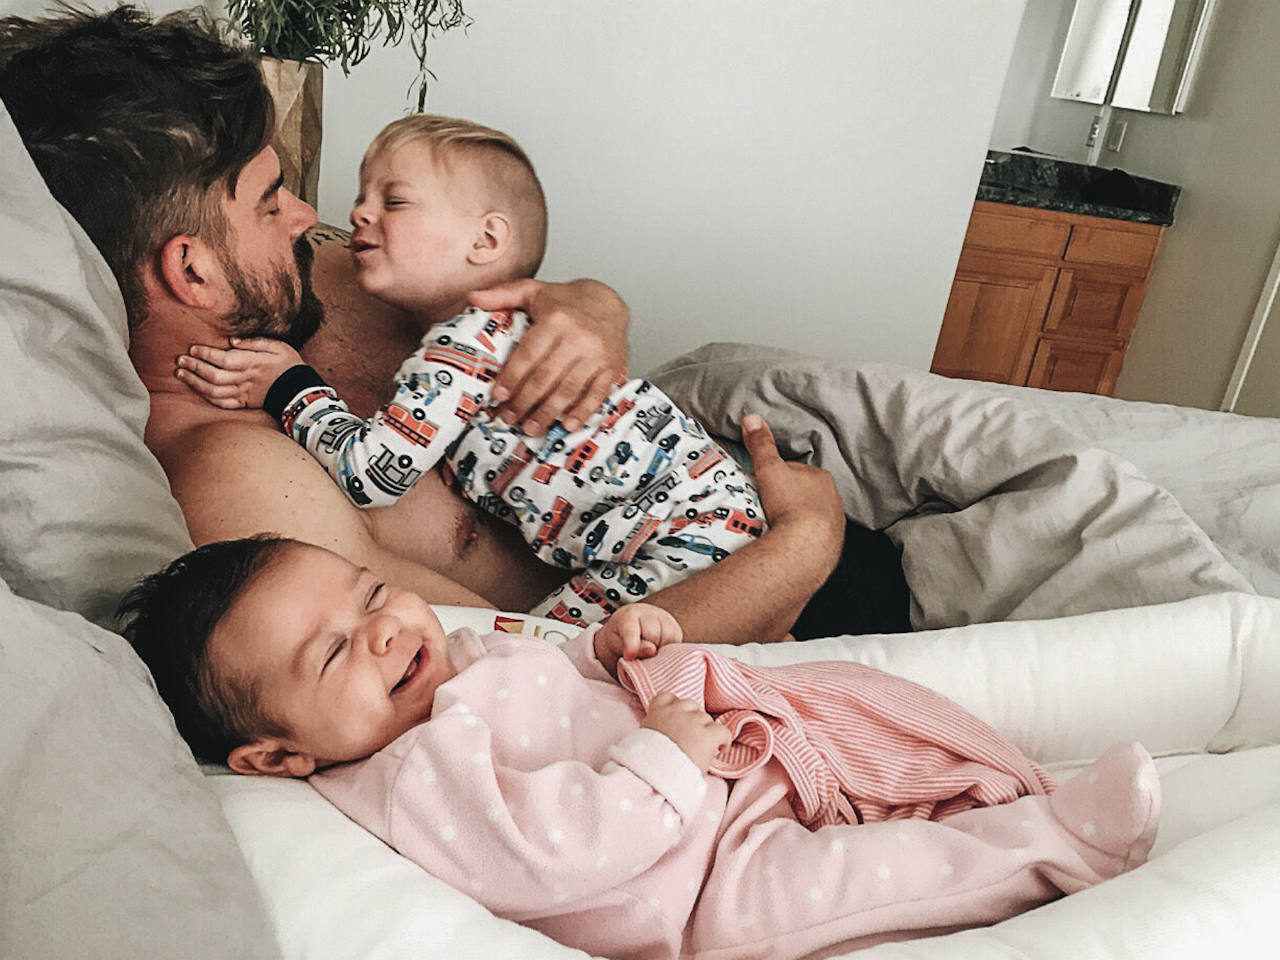 A dad in bed with his son on his chest and his baby next to him